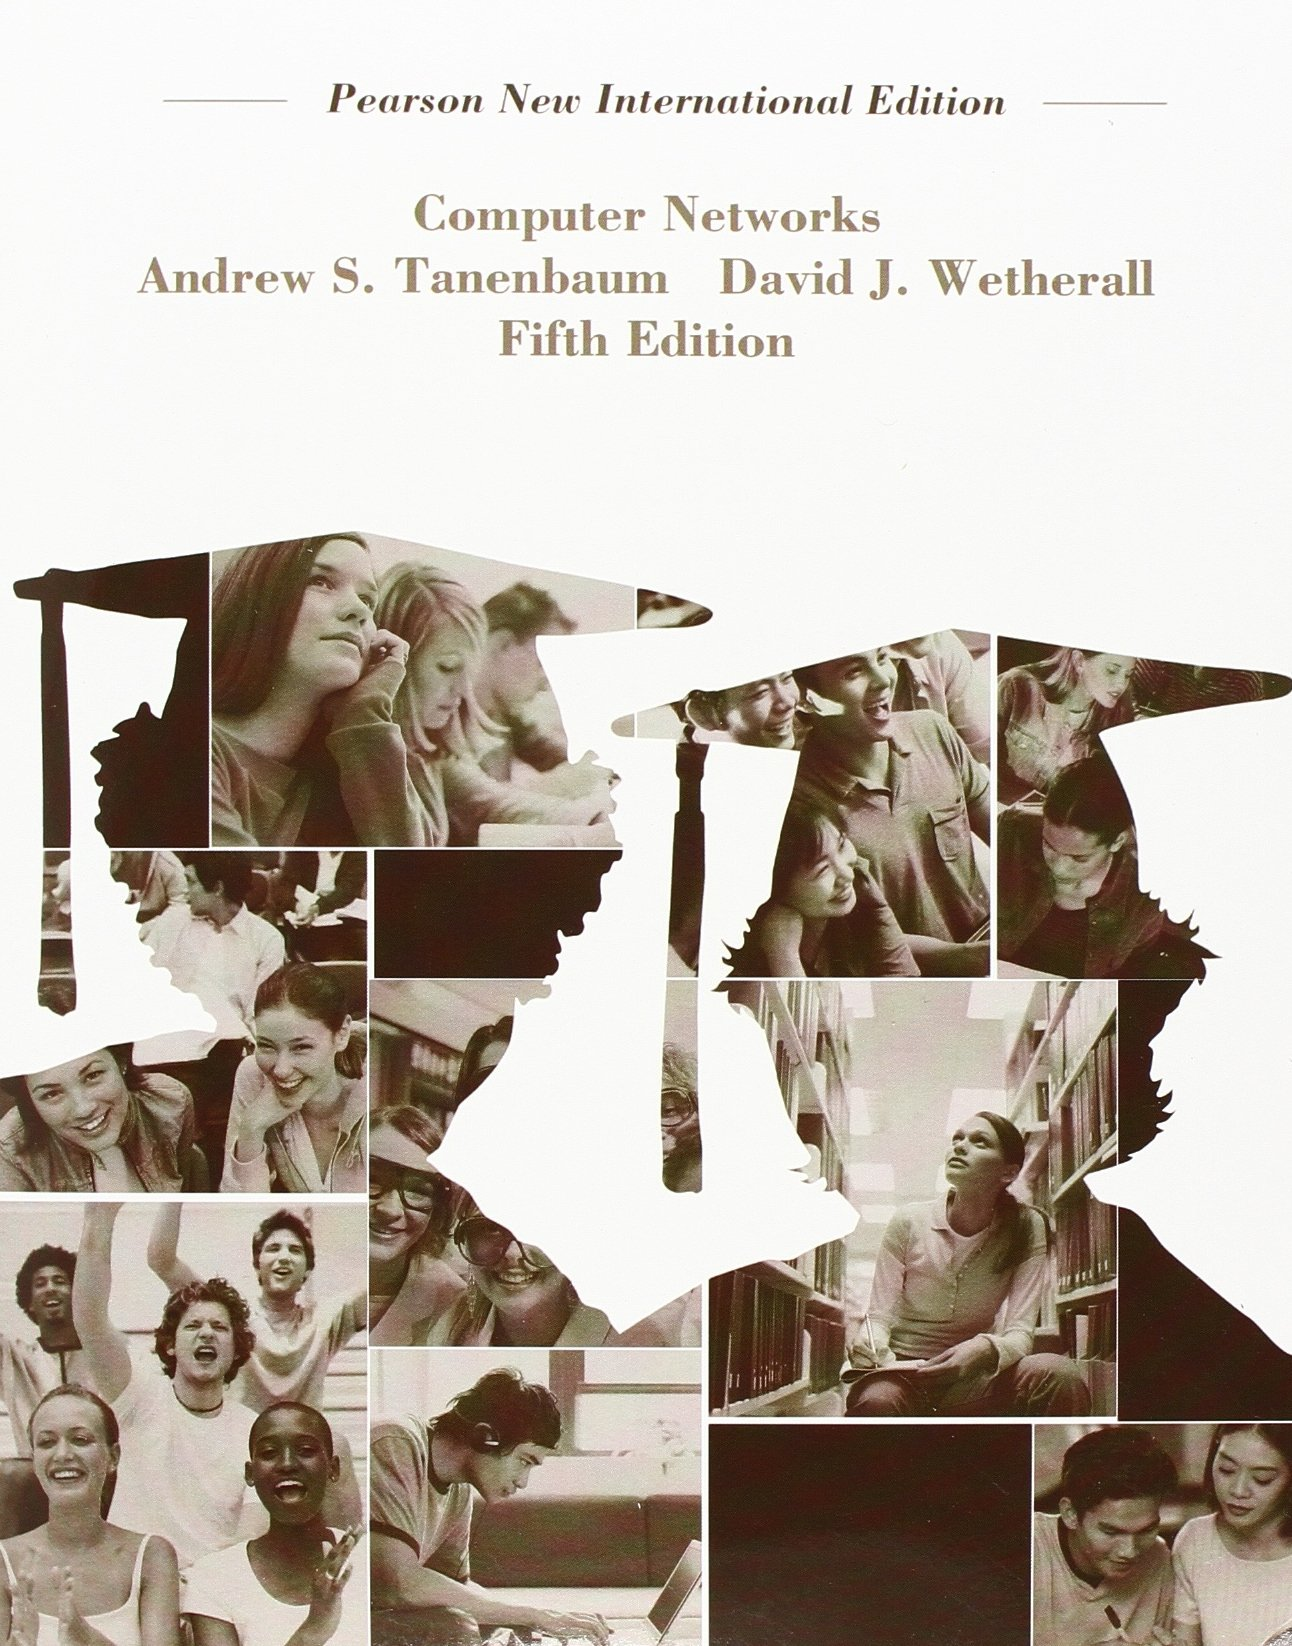 Computer Networks: Pearson New International Edition